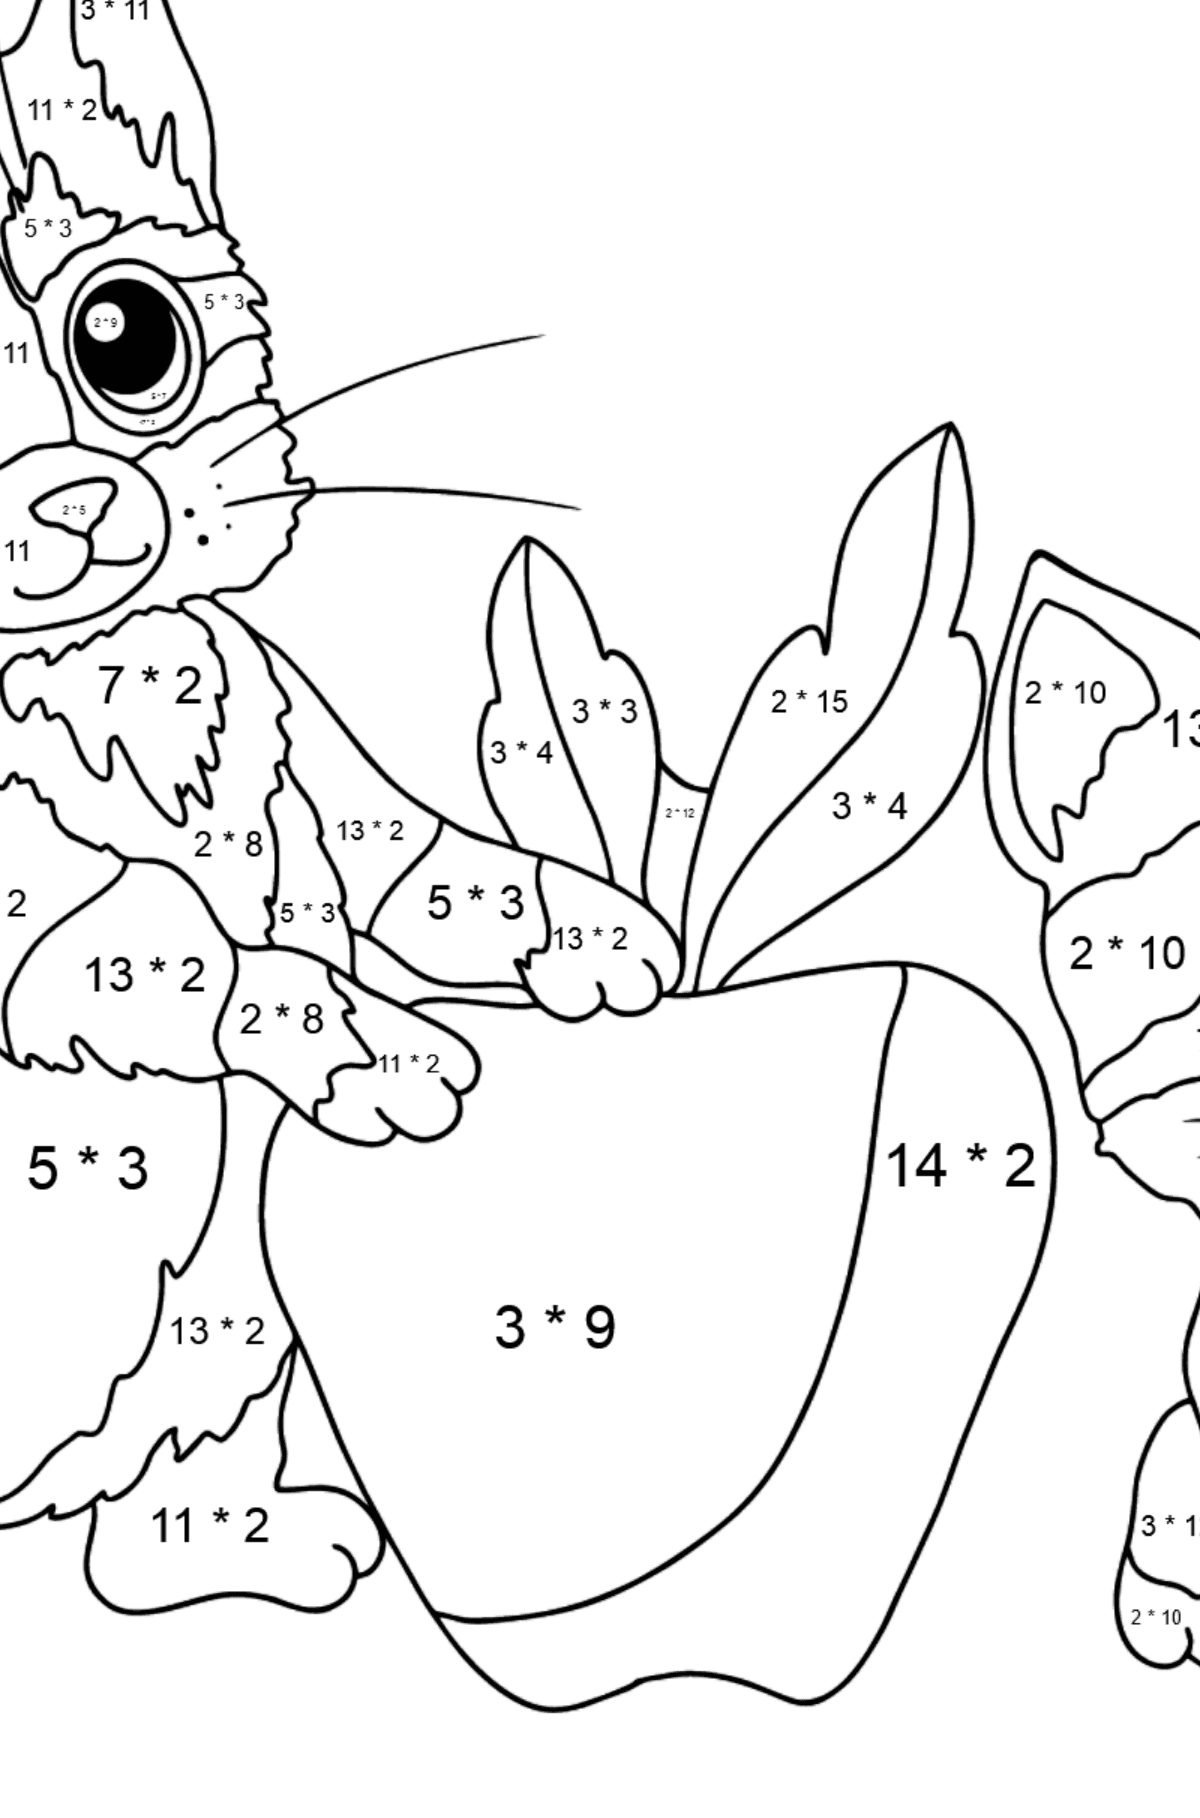 Coloring Page - Kittens are Having Fun with a Red Apple - Math Coloring - Multiplication for Kids